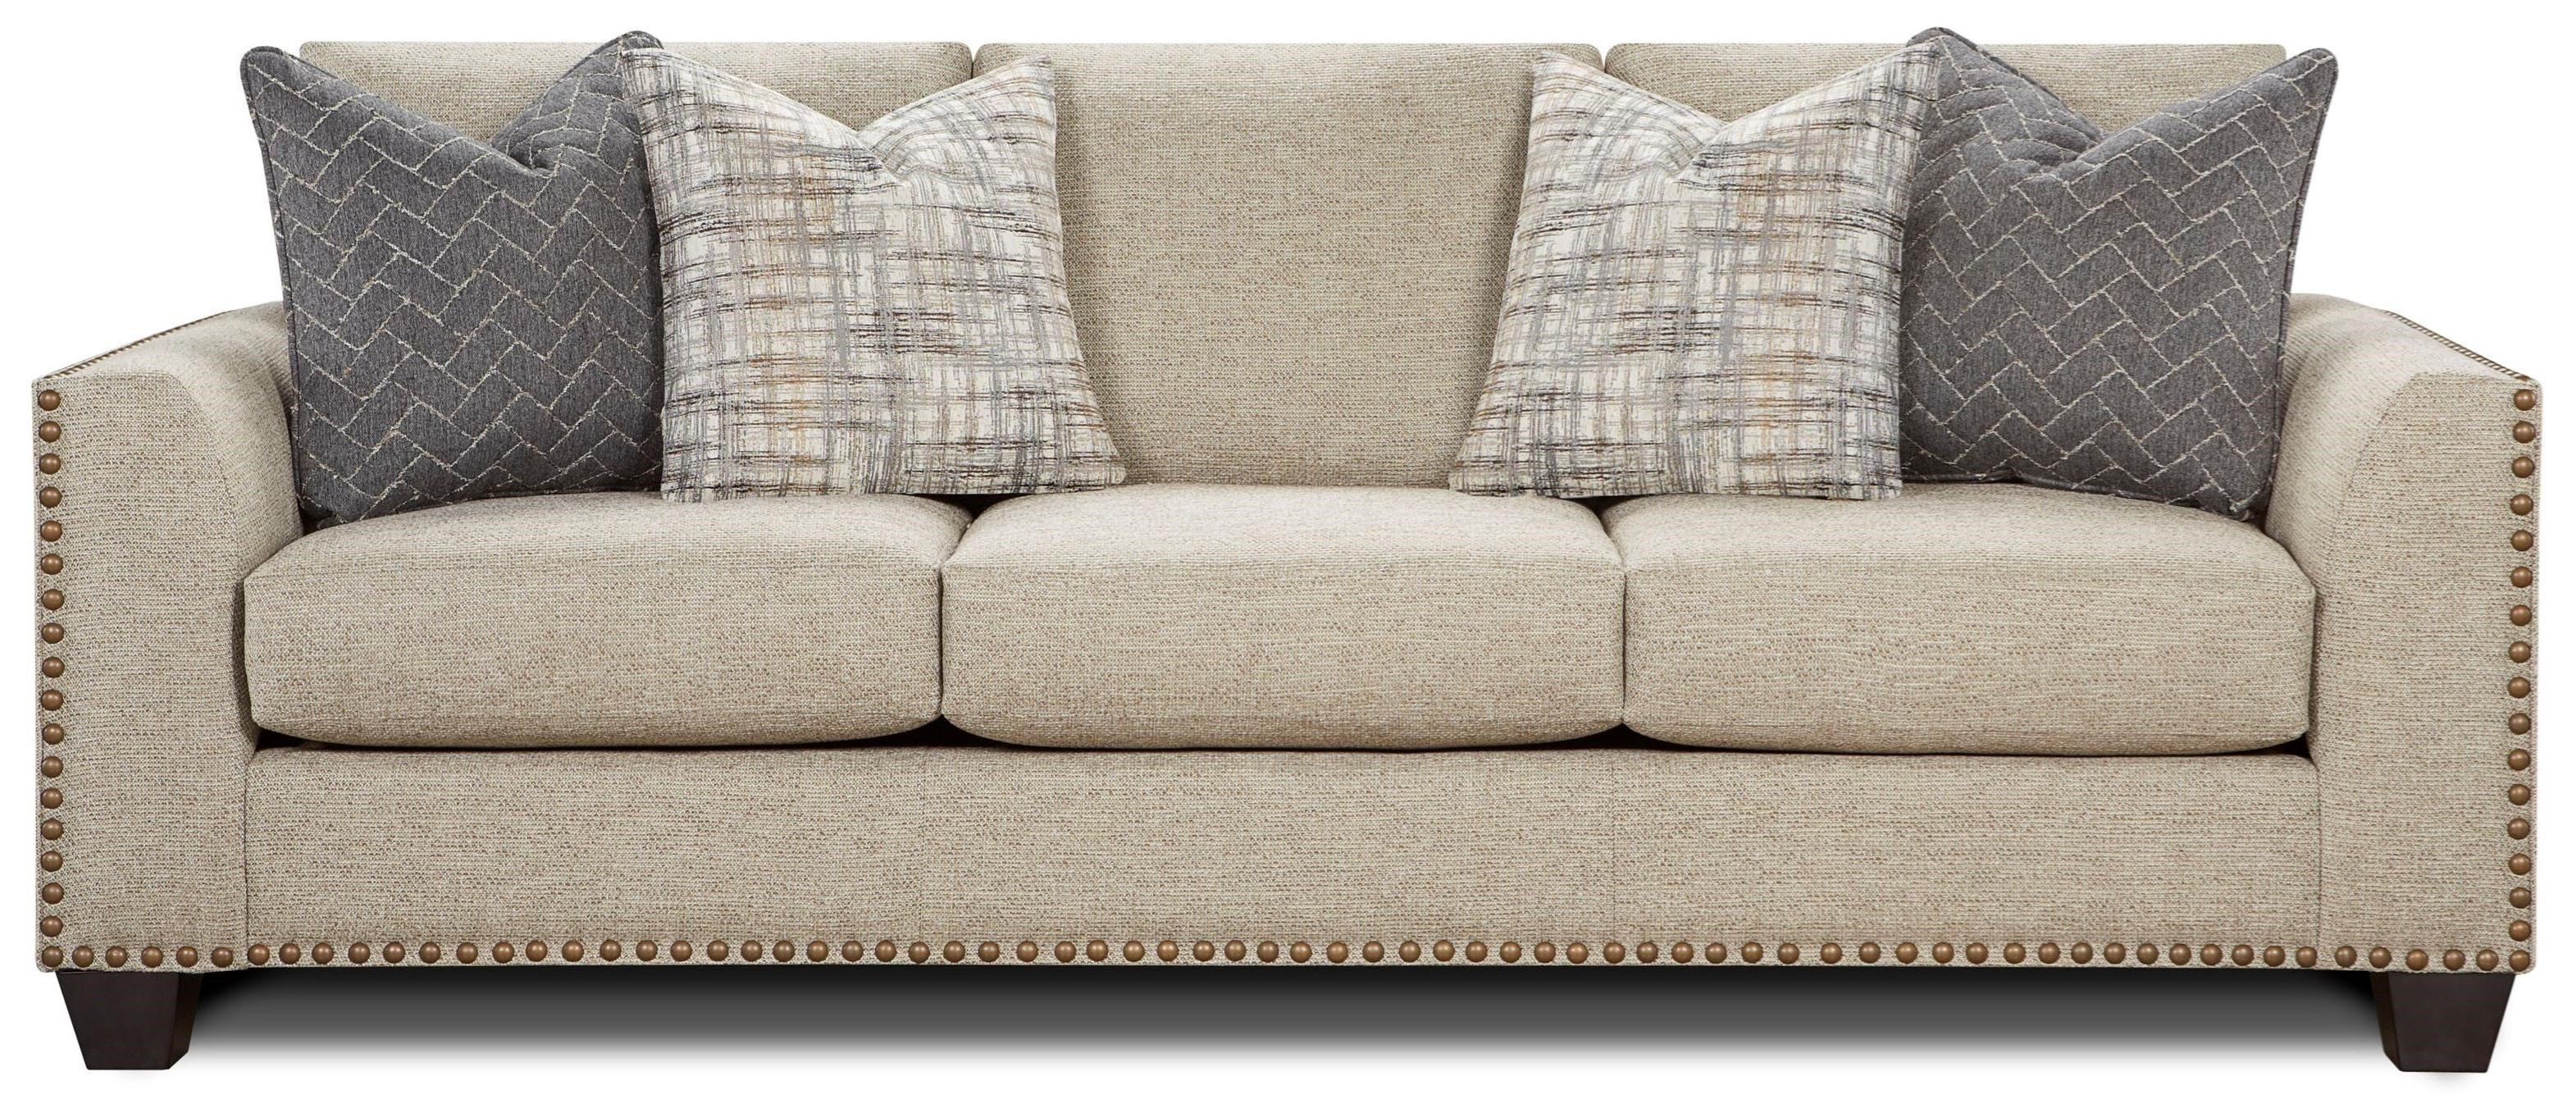 colders living room furniture. fusion furniture 1430 contemporary sofa with nailhead trim colders living room r